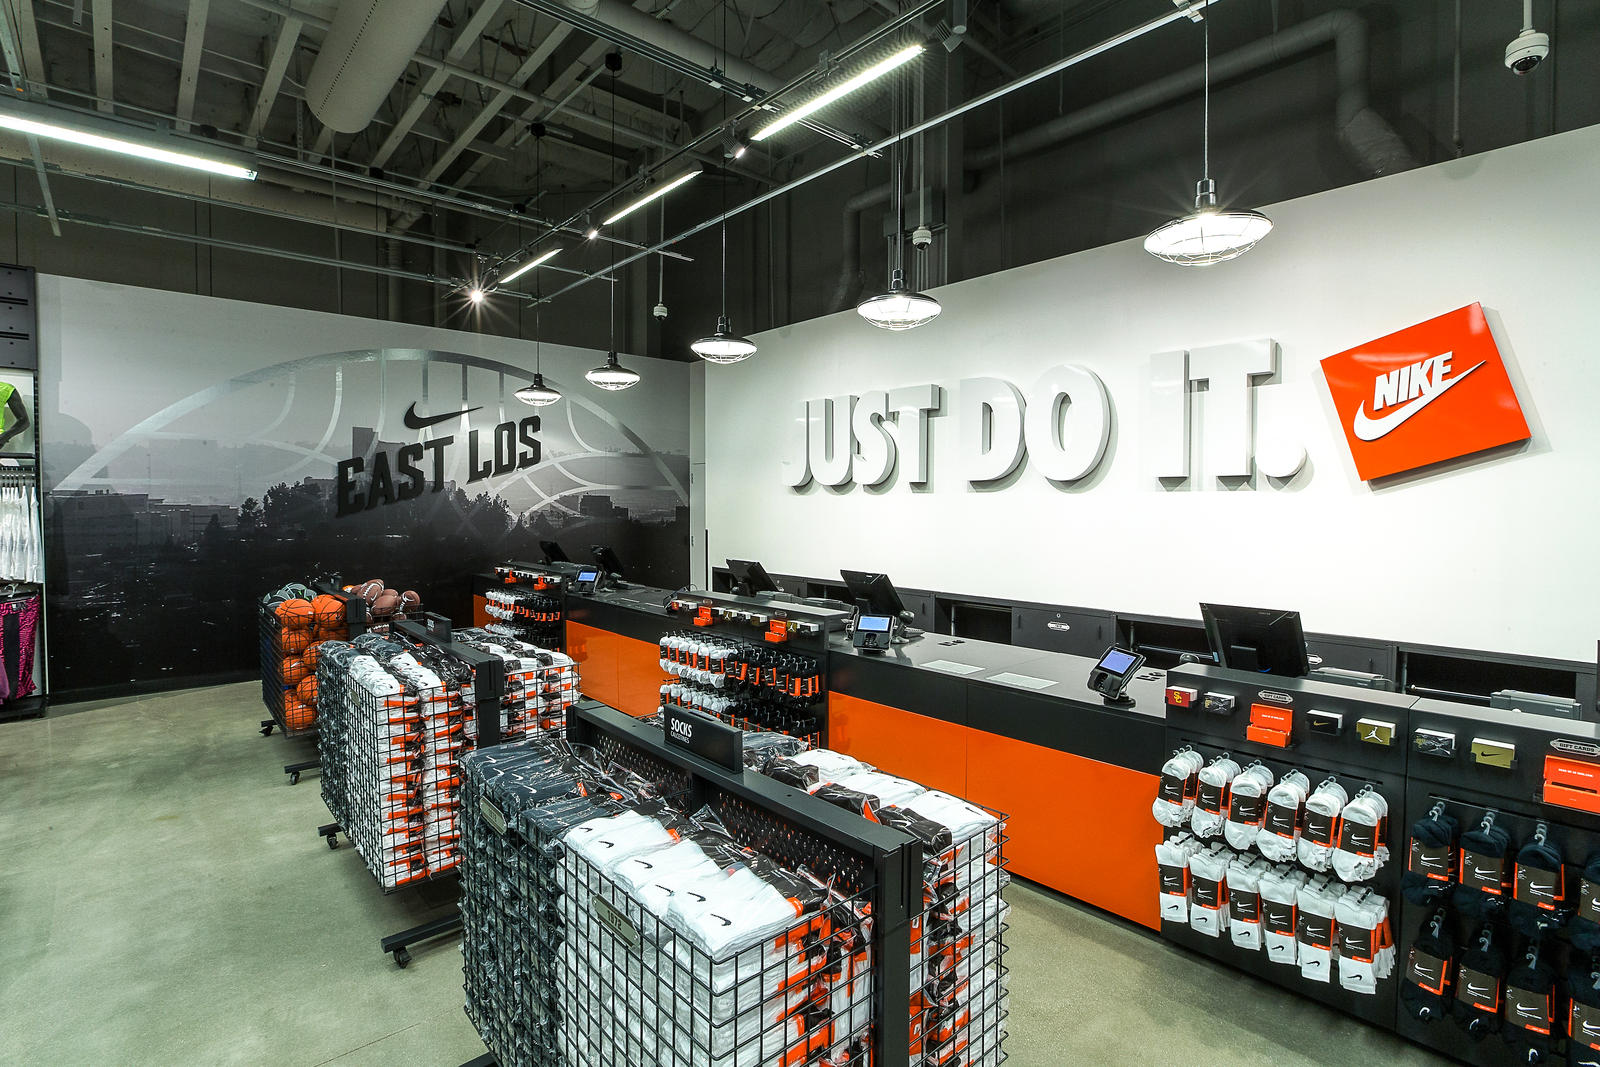 Nike's New East Los Community Store Ignites Sport and ...